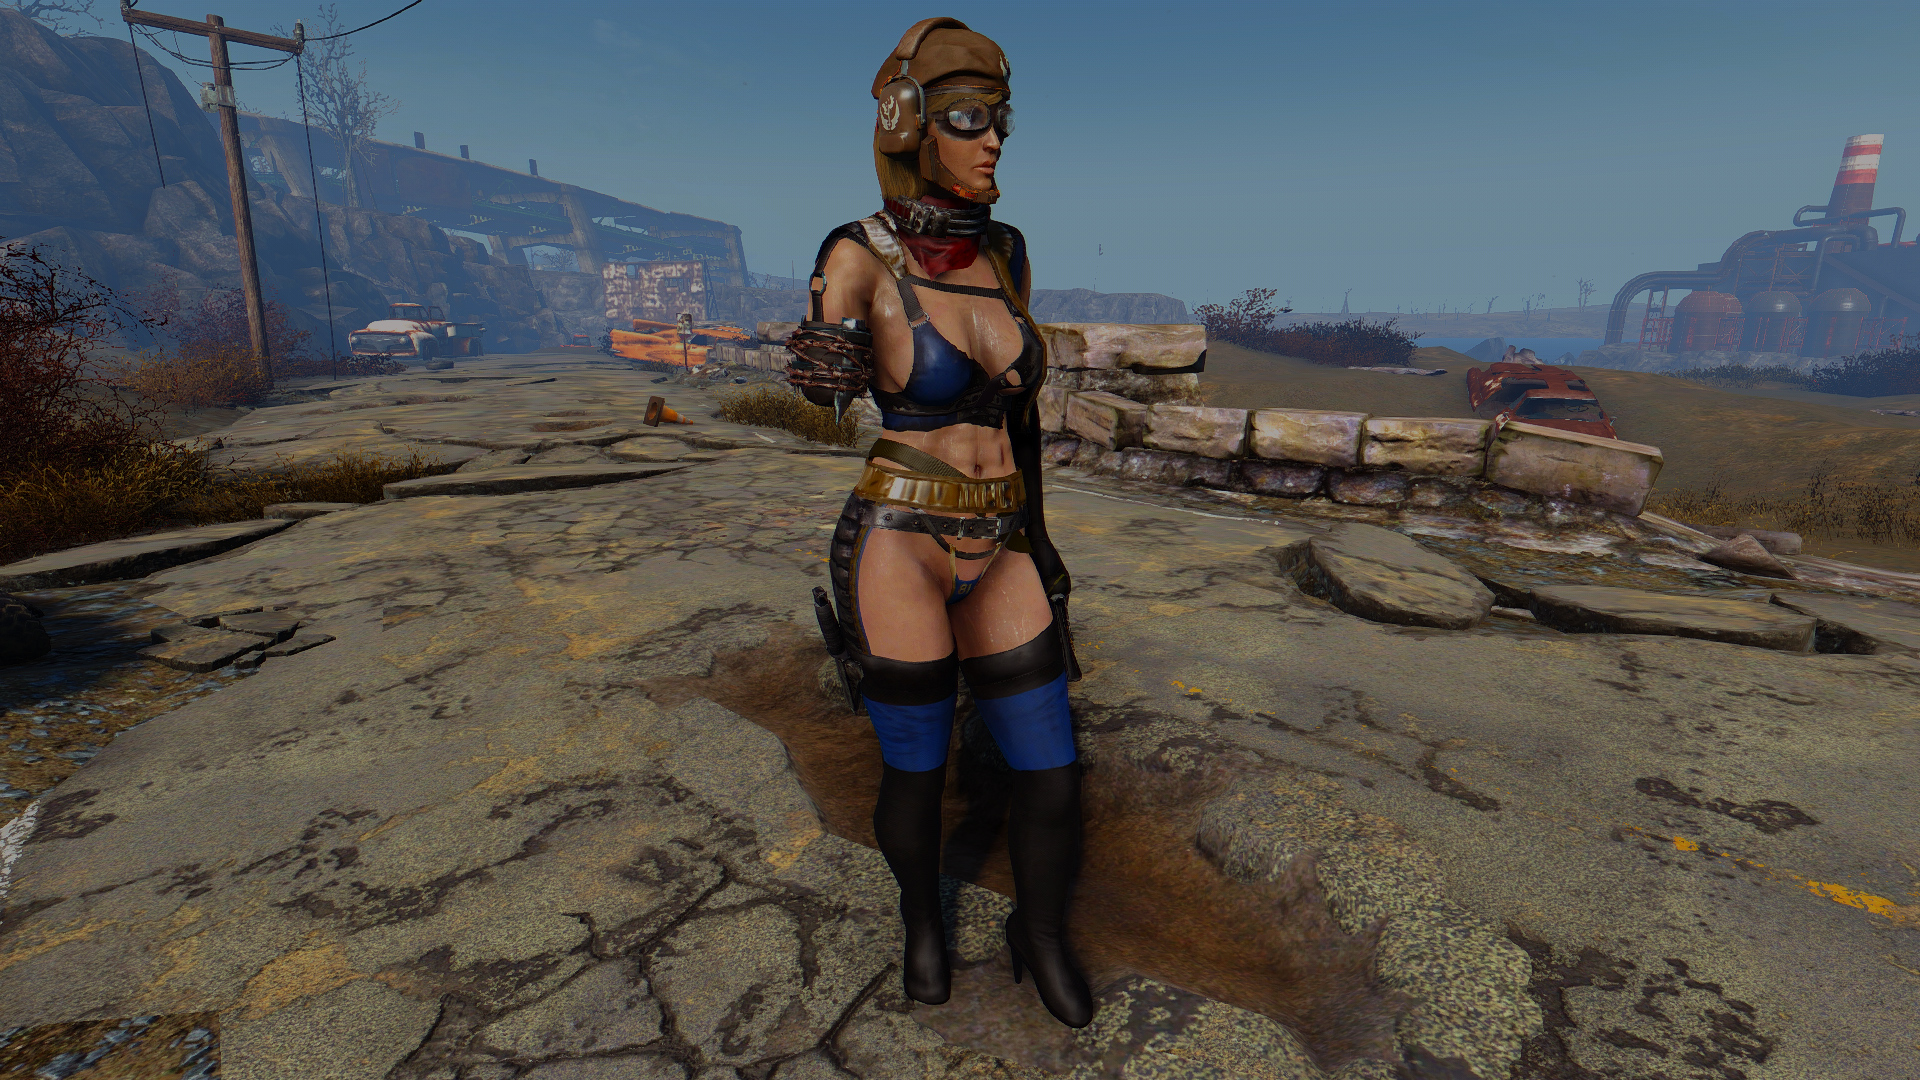 Fallout rule 34 naked images